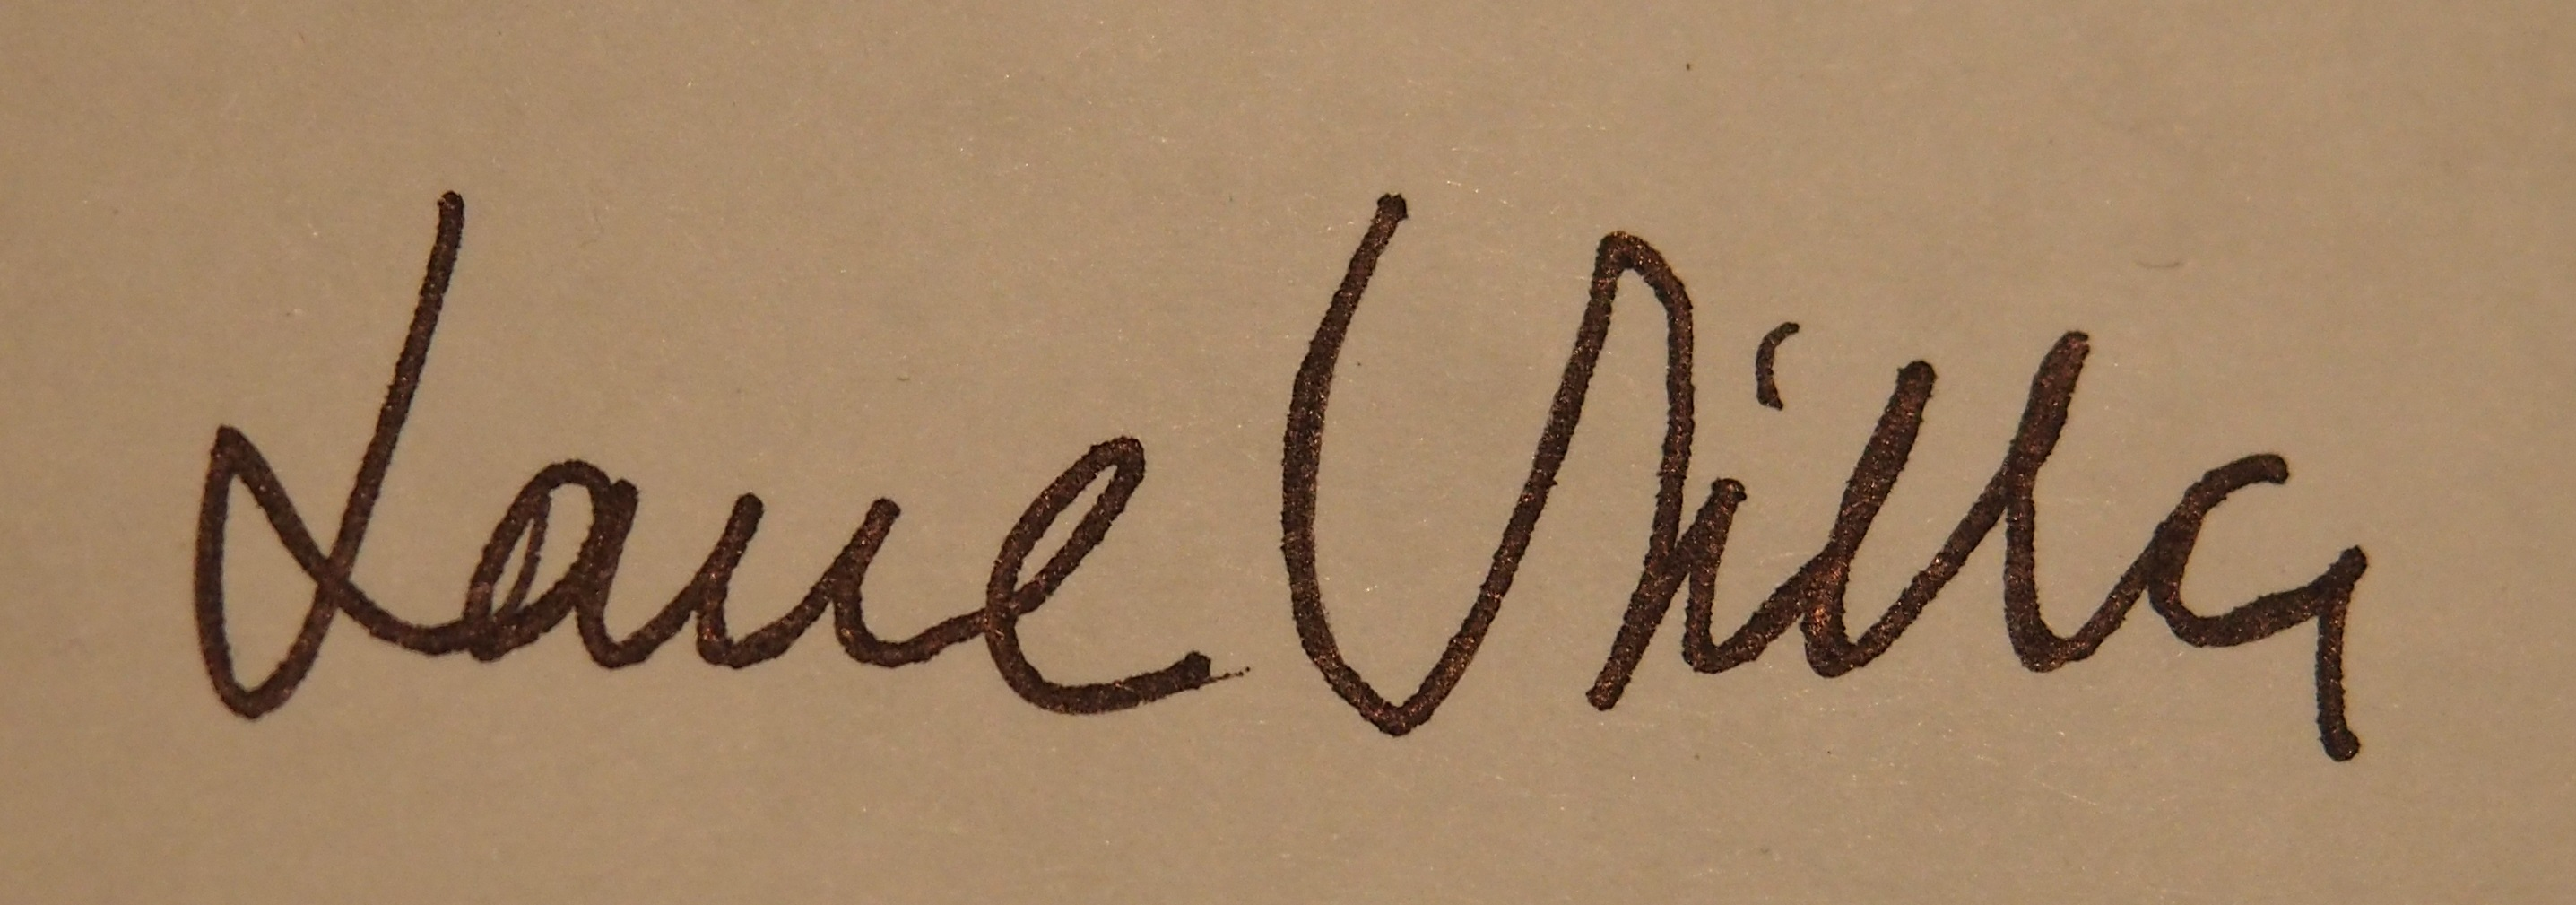 louise villa's Signature